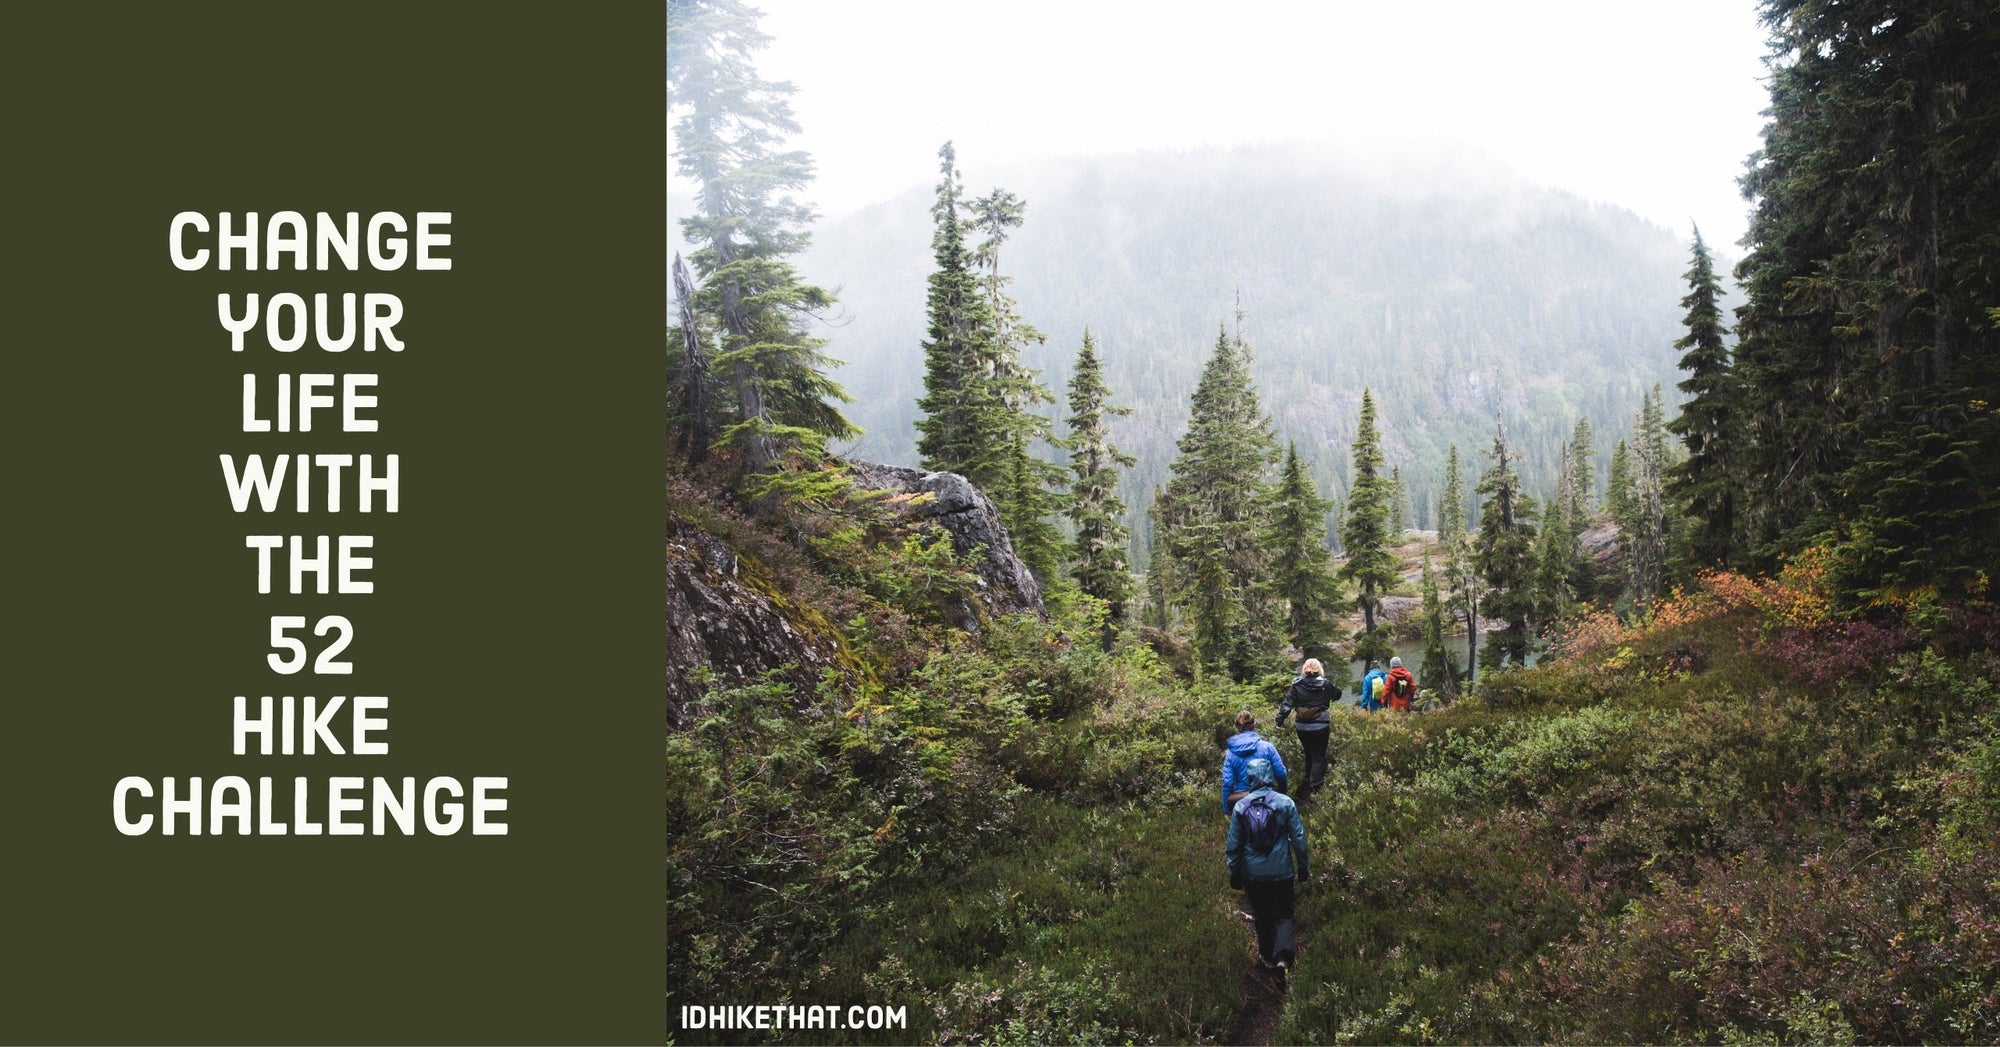 Find out how the 52 hike challenge can change your life for the better at idhikethat.com